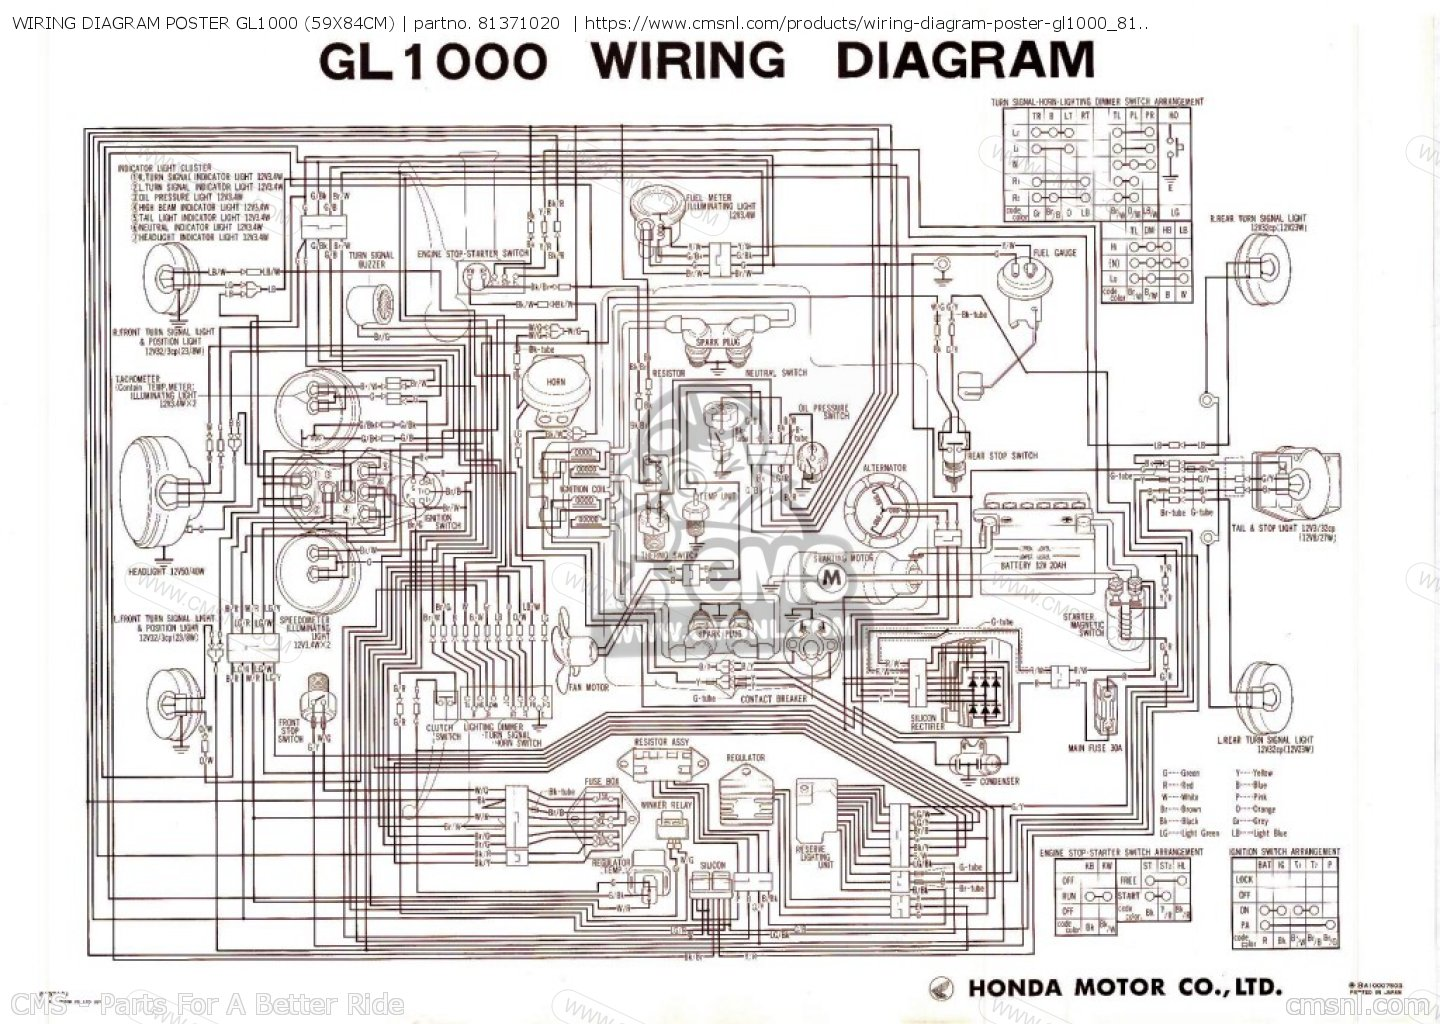 81371020: wiring diagram poster gl1000 (59x84cm) honda - buy the 81371-020-  at cmsnl  cmsnl.com